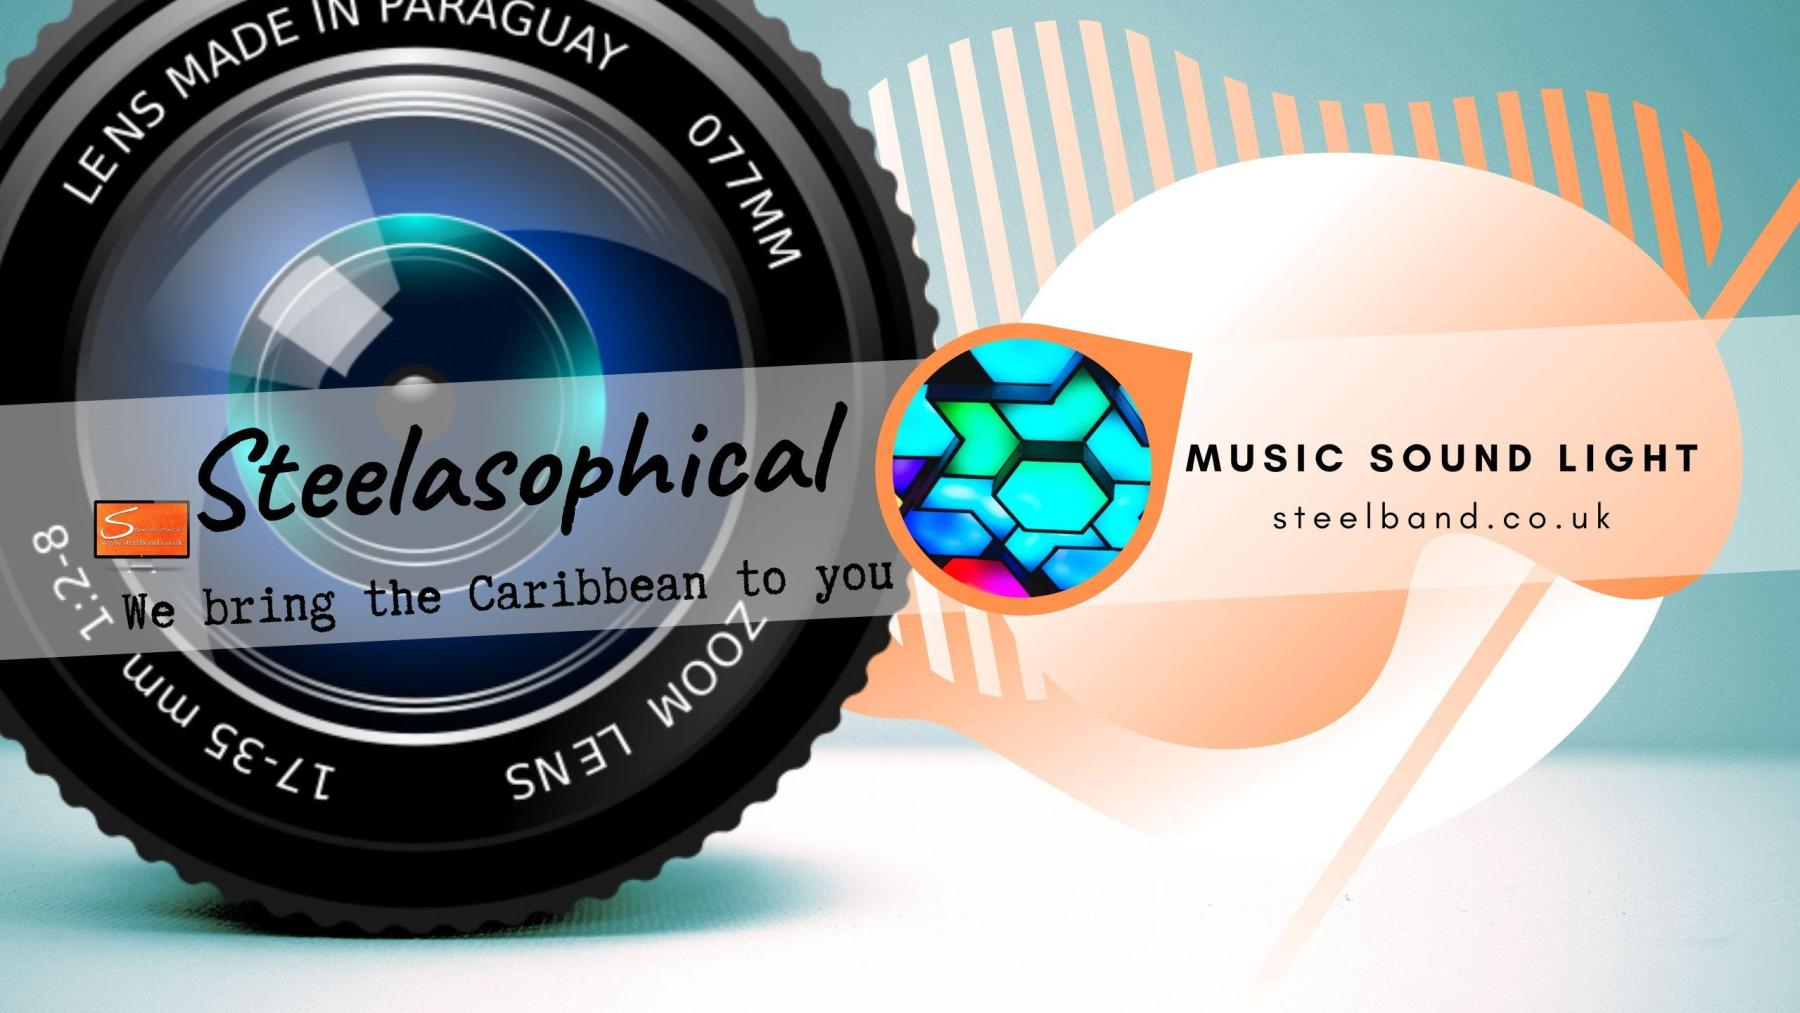 Steelasophical SteelBand for Hire UK steelpans Steeldrums Caribbean Music 01fsd